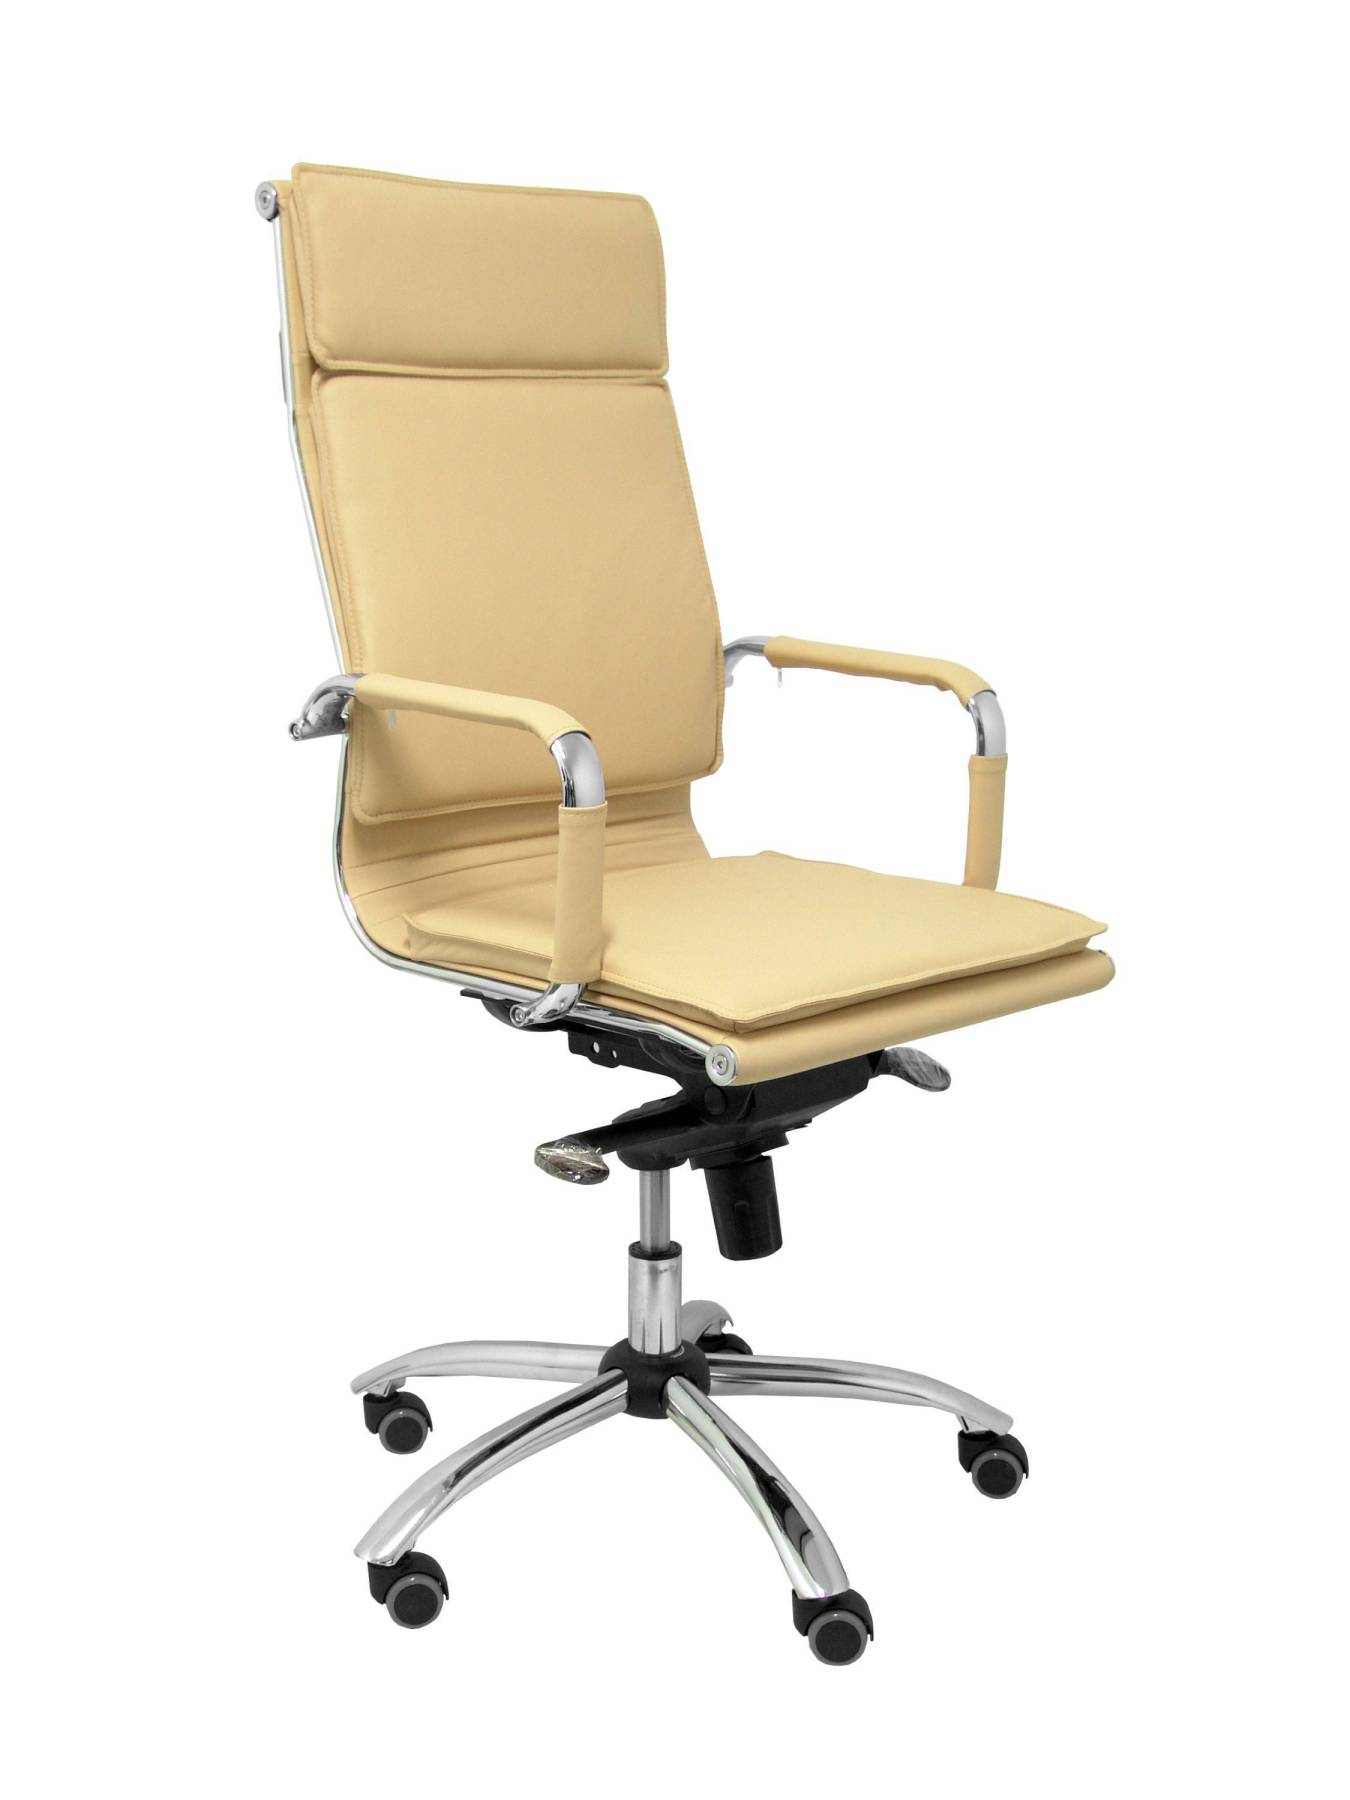 Office's Armchair Ergonomic Confidante/waiting With House Mechanism Tilting Multi Position And Dimmable In High Altitude-up Seat